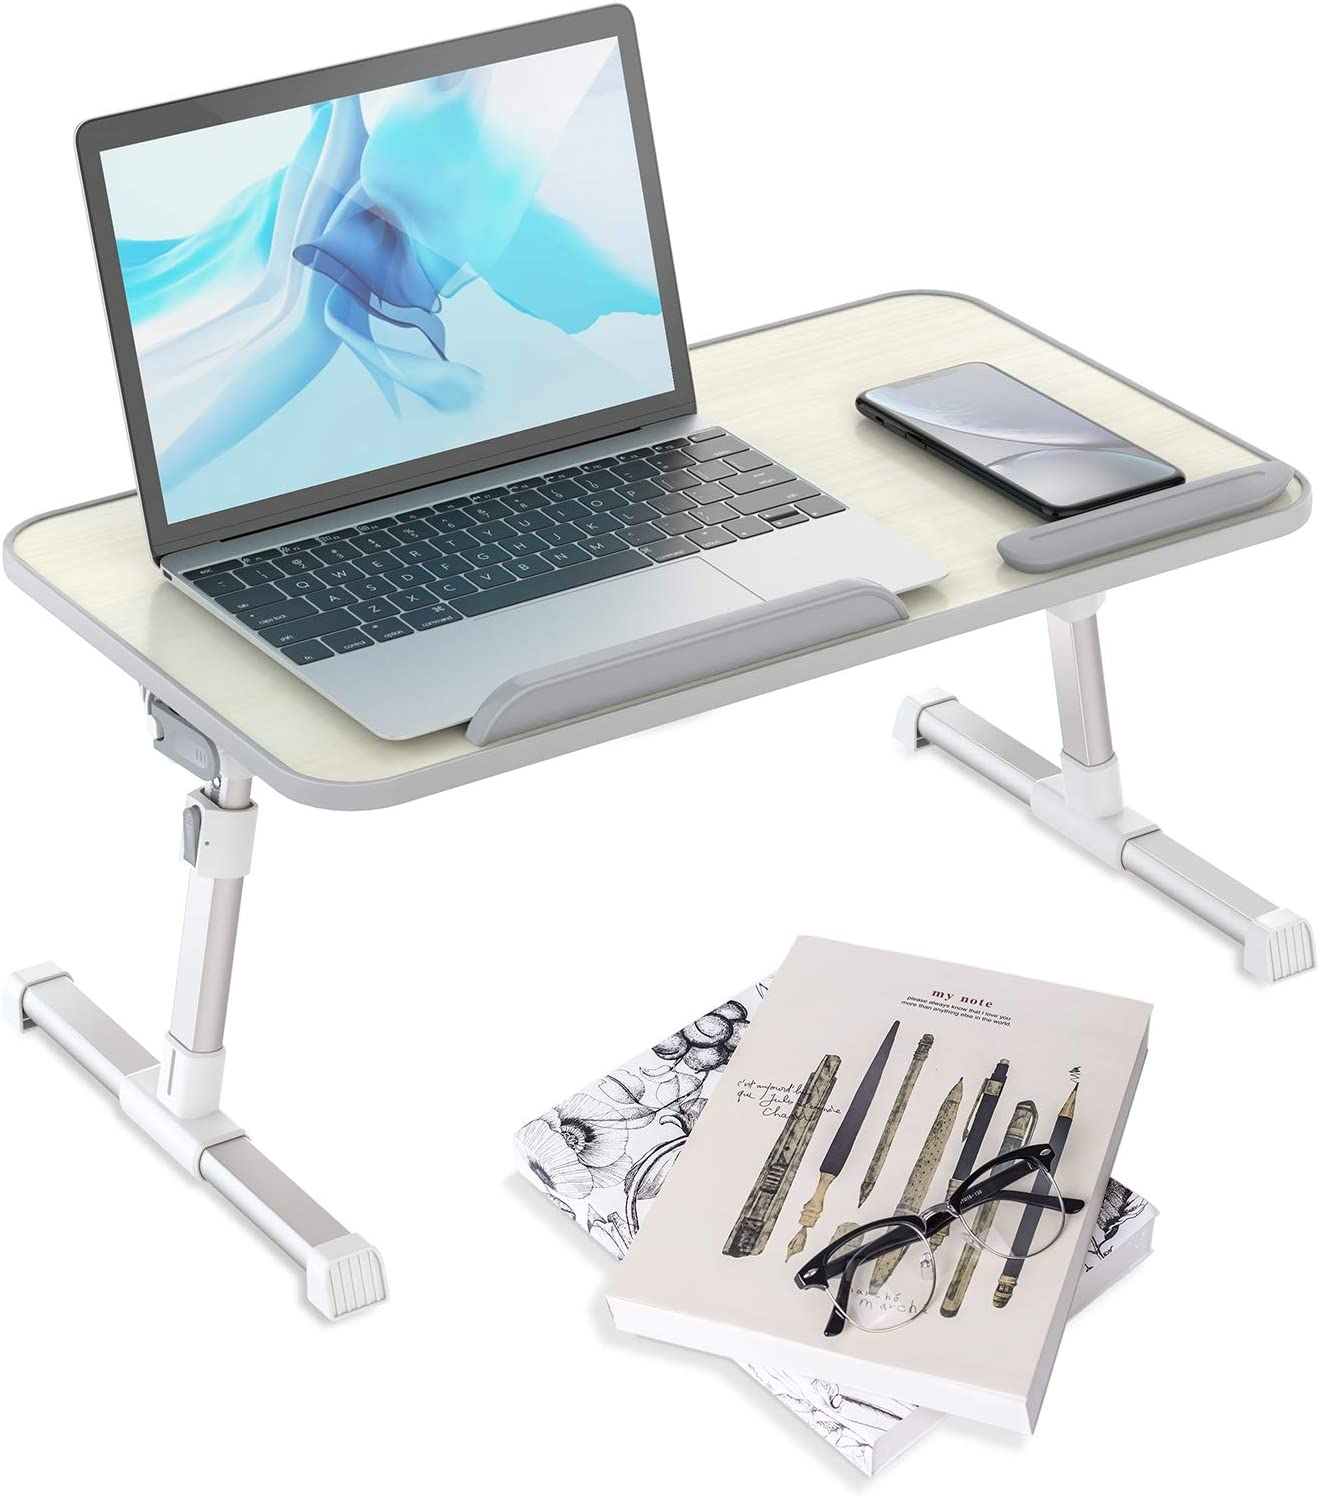 Klsniur Laptop Bed Tray Table, Adjustable Lap Desk with Foldable Legs, Portable Laptop Desk Stand for Eating, Writing, Reading and Drawing